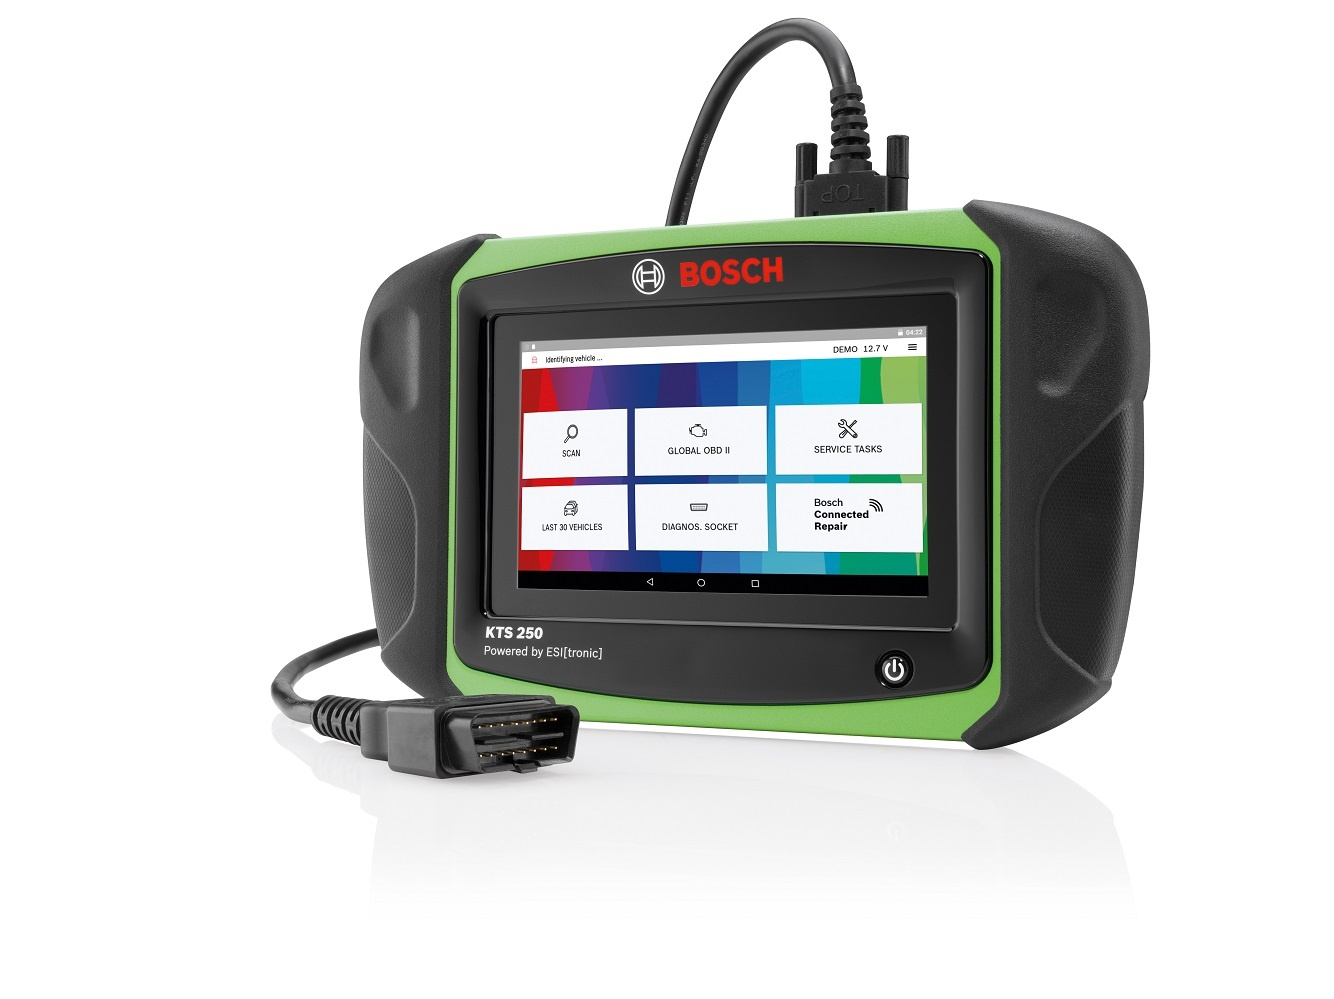 Bosch announces the launch of the KTS 250 in the UAE